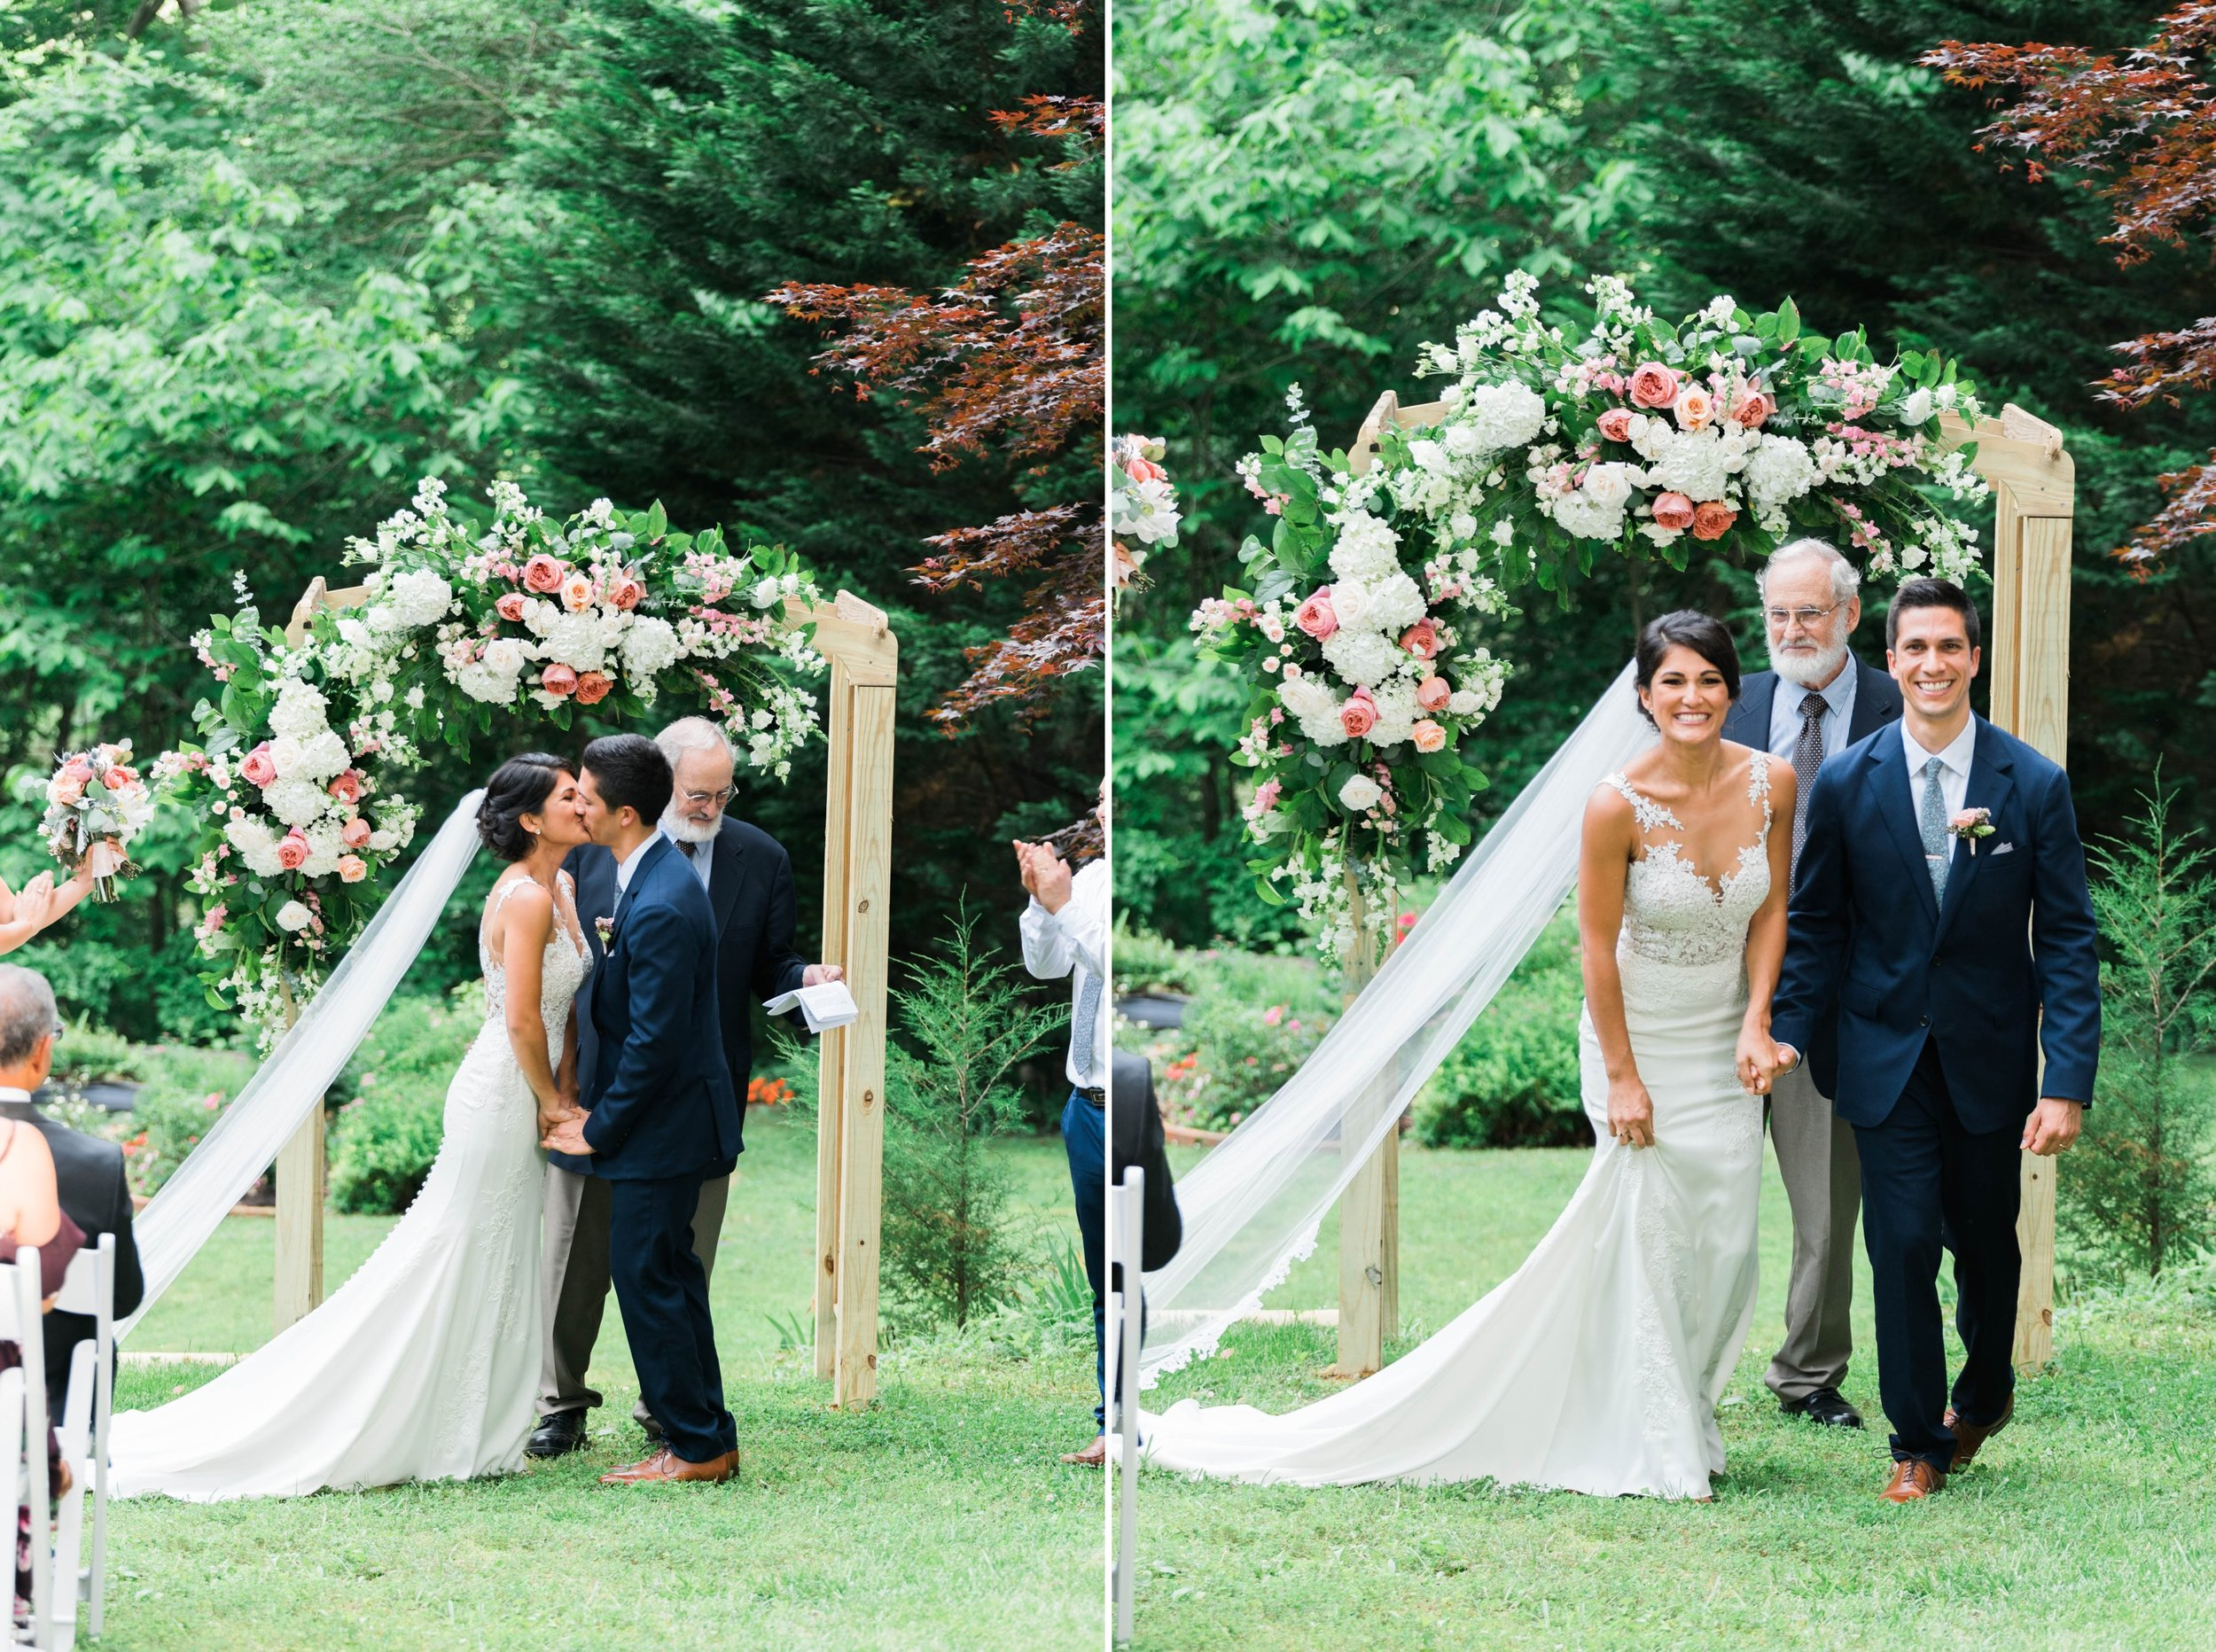 Williamsburgvawedding_backyardwedding_virginiaweddingphotographer_lynchburgweddingphotographer_PaulAliya 17.jpg